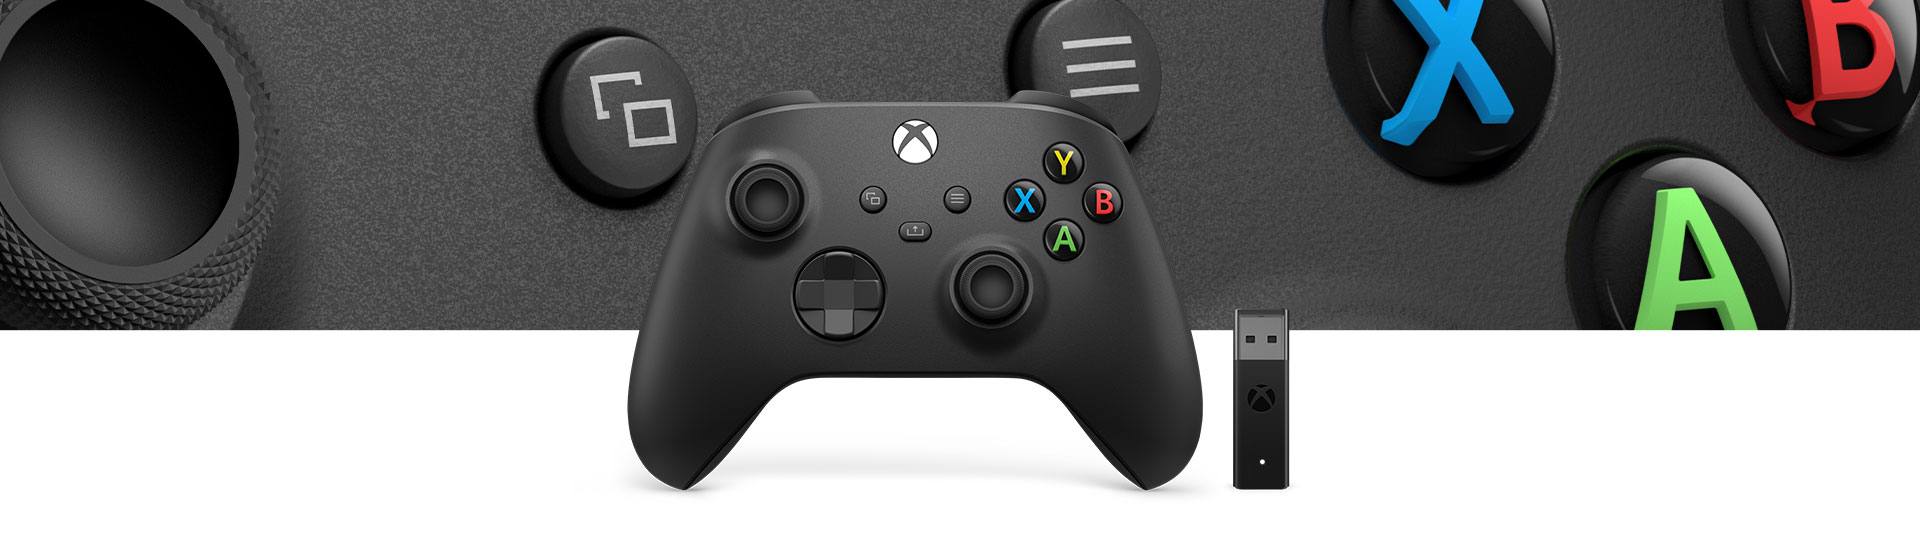 Xbox Wireless Controller + Wireless Adapter for Windows 10  with a closeup of controller surface texture